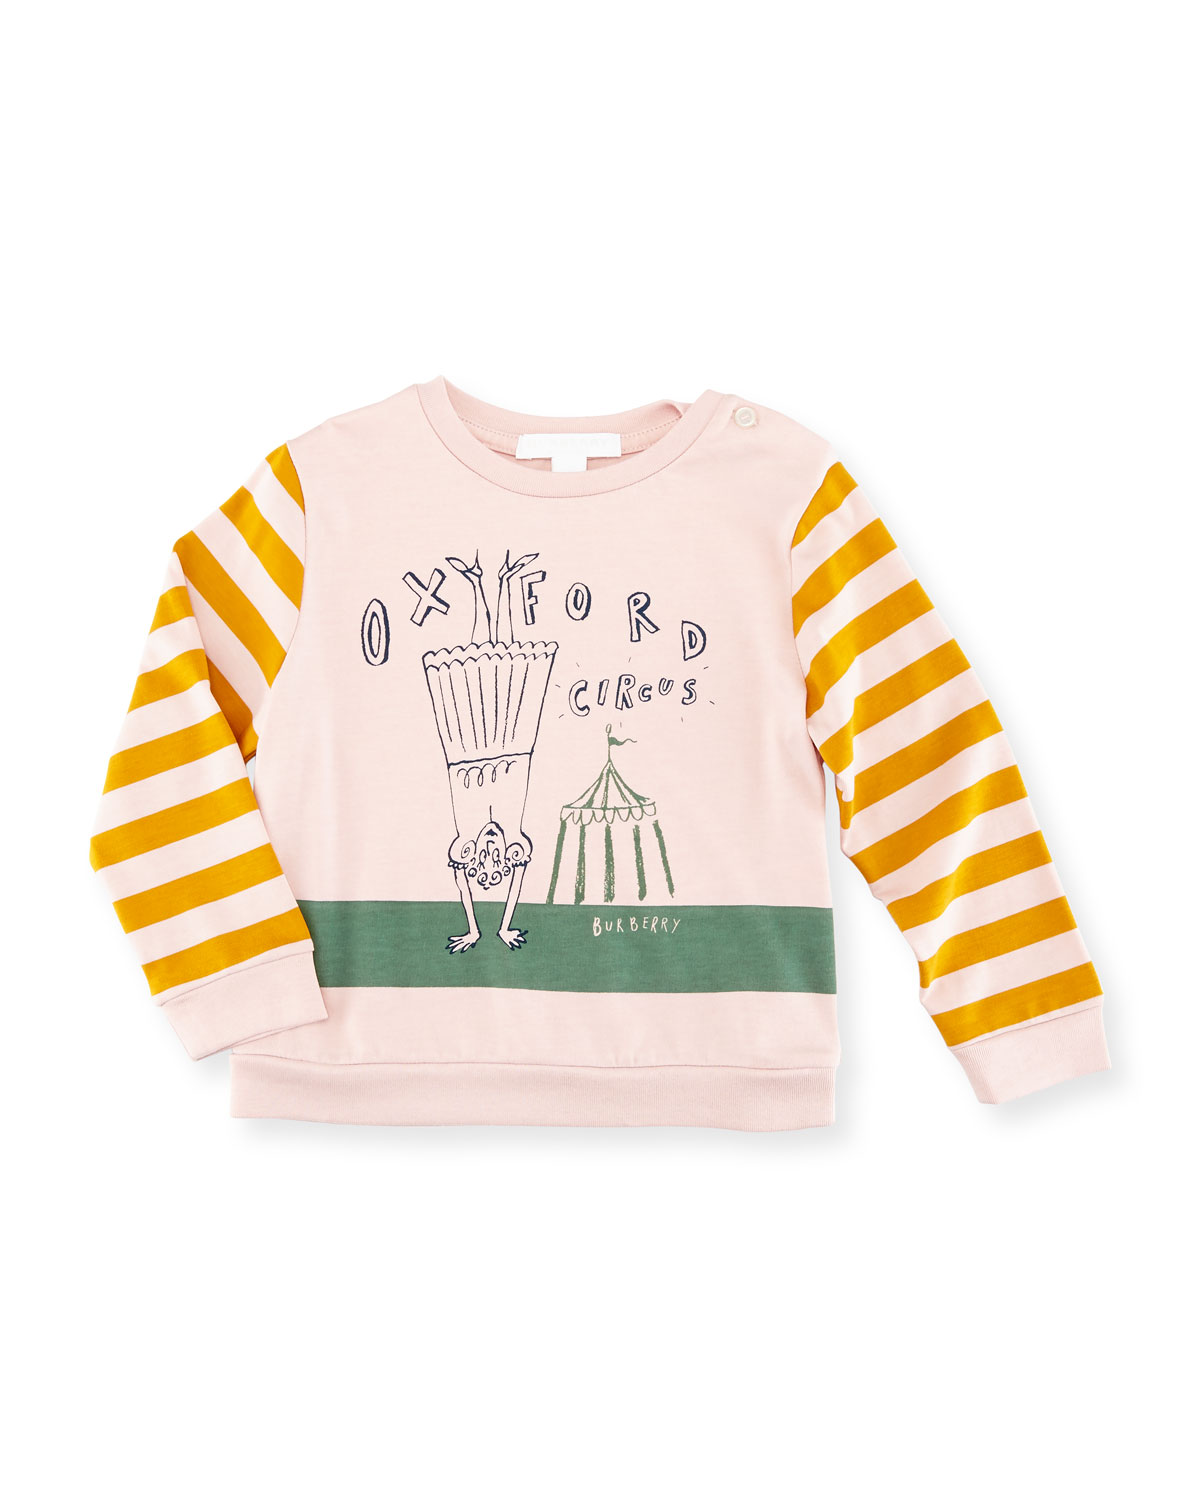 Olivia Striped Graphic Sweatshirt, Size 12M-3T